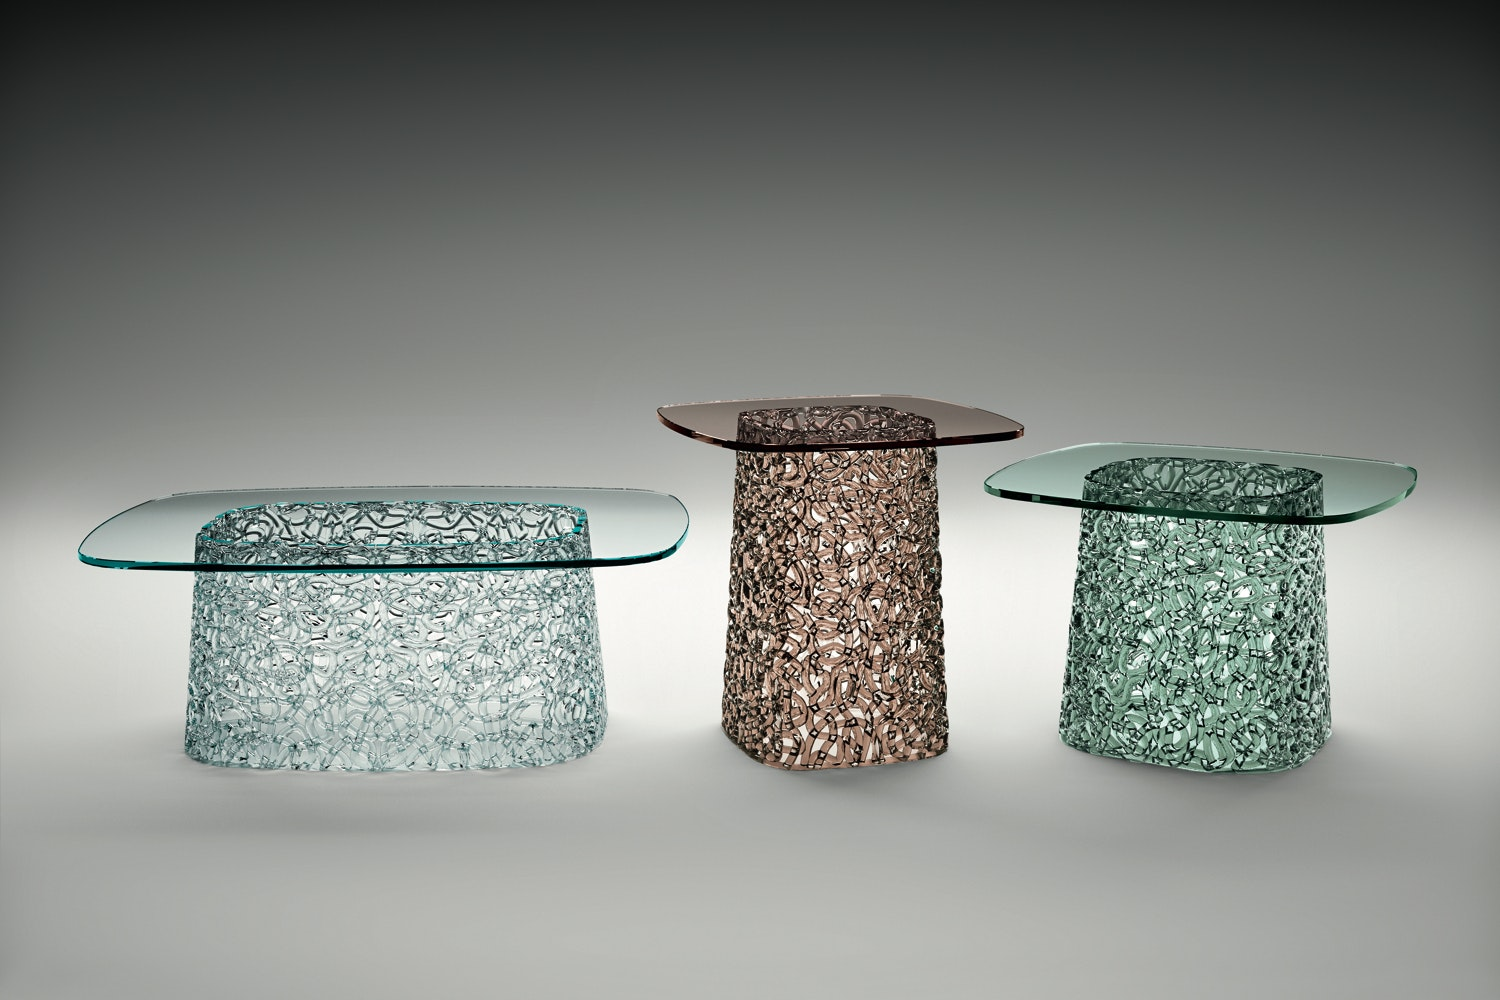 Macrame Coffee Table by Lucidi & Pevere for Fiam Italia